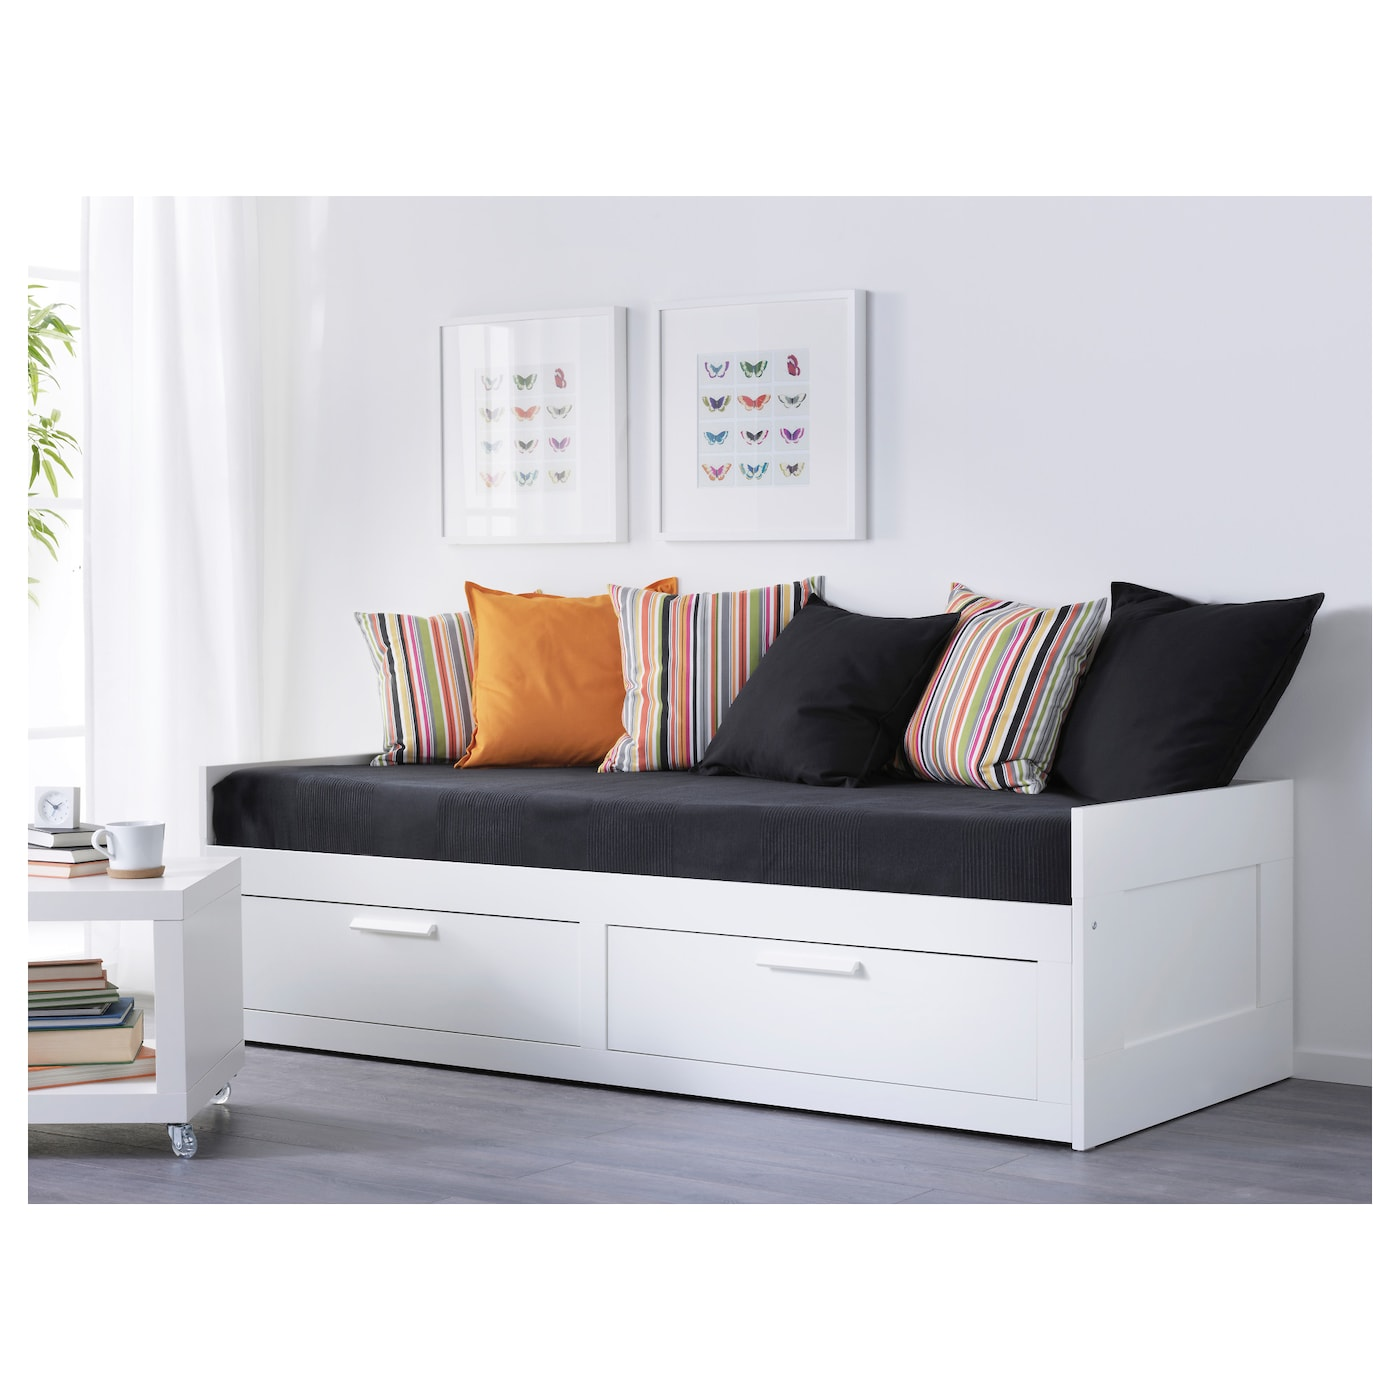 Brimnes Day Bed Frame With 2 Drawers